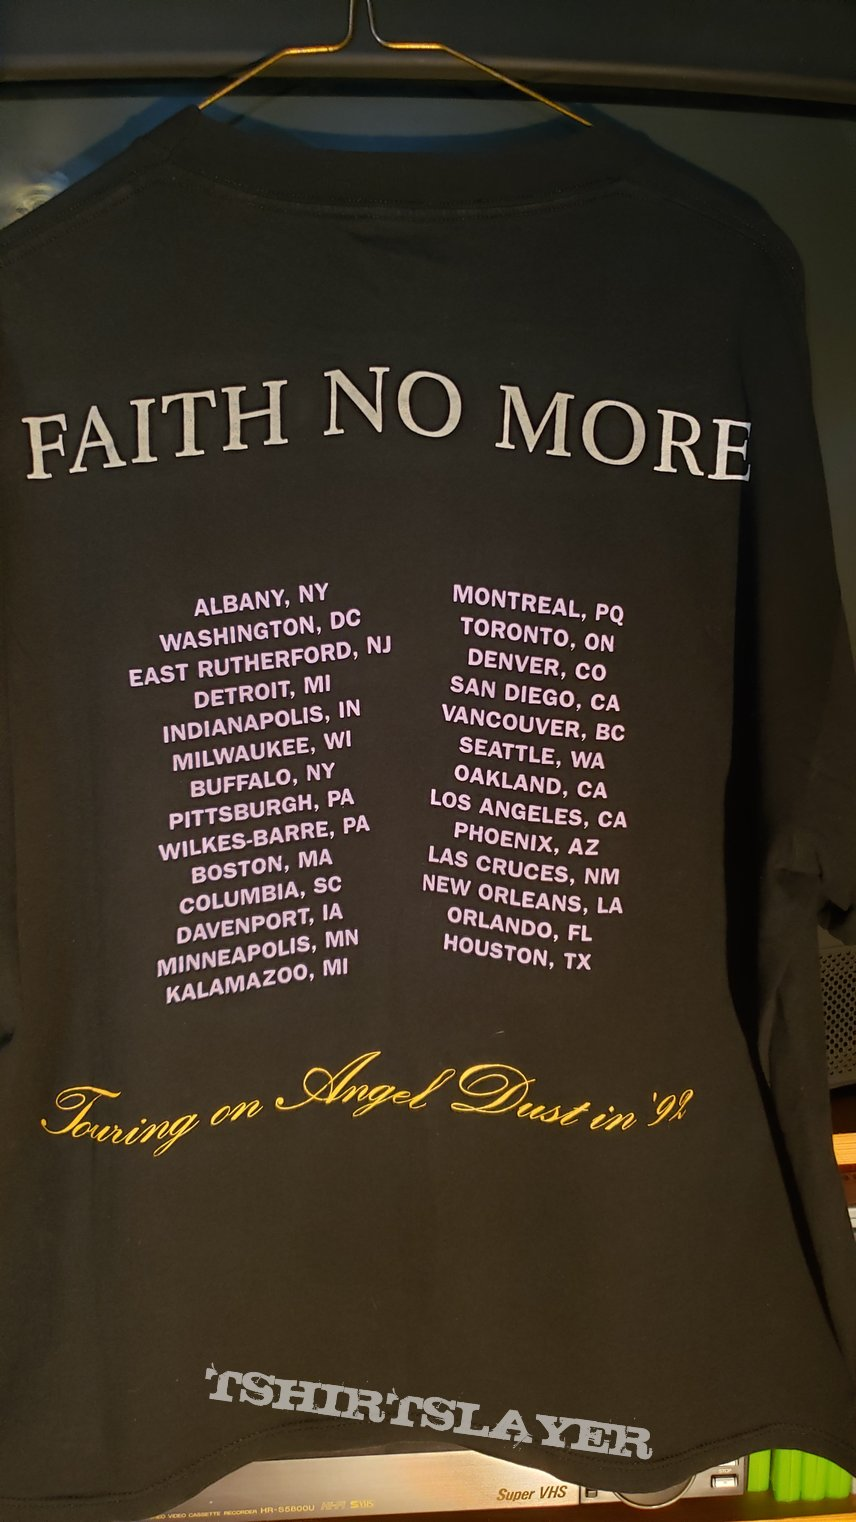 Faith No More - Touring on Angel Dust